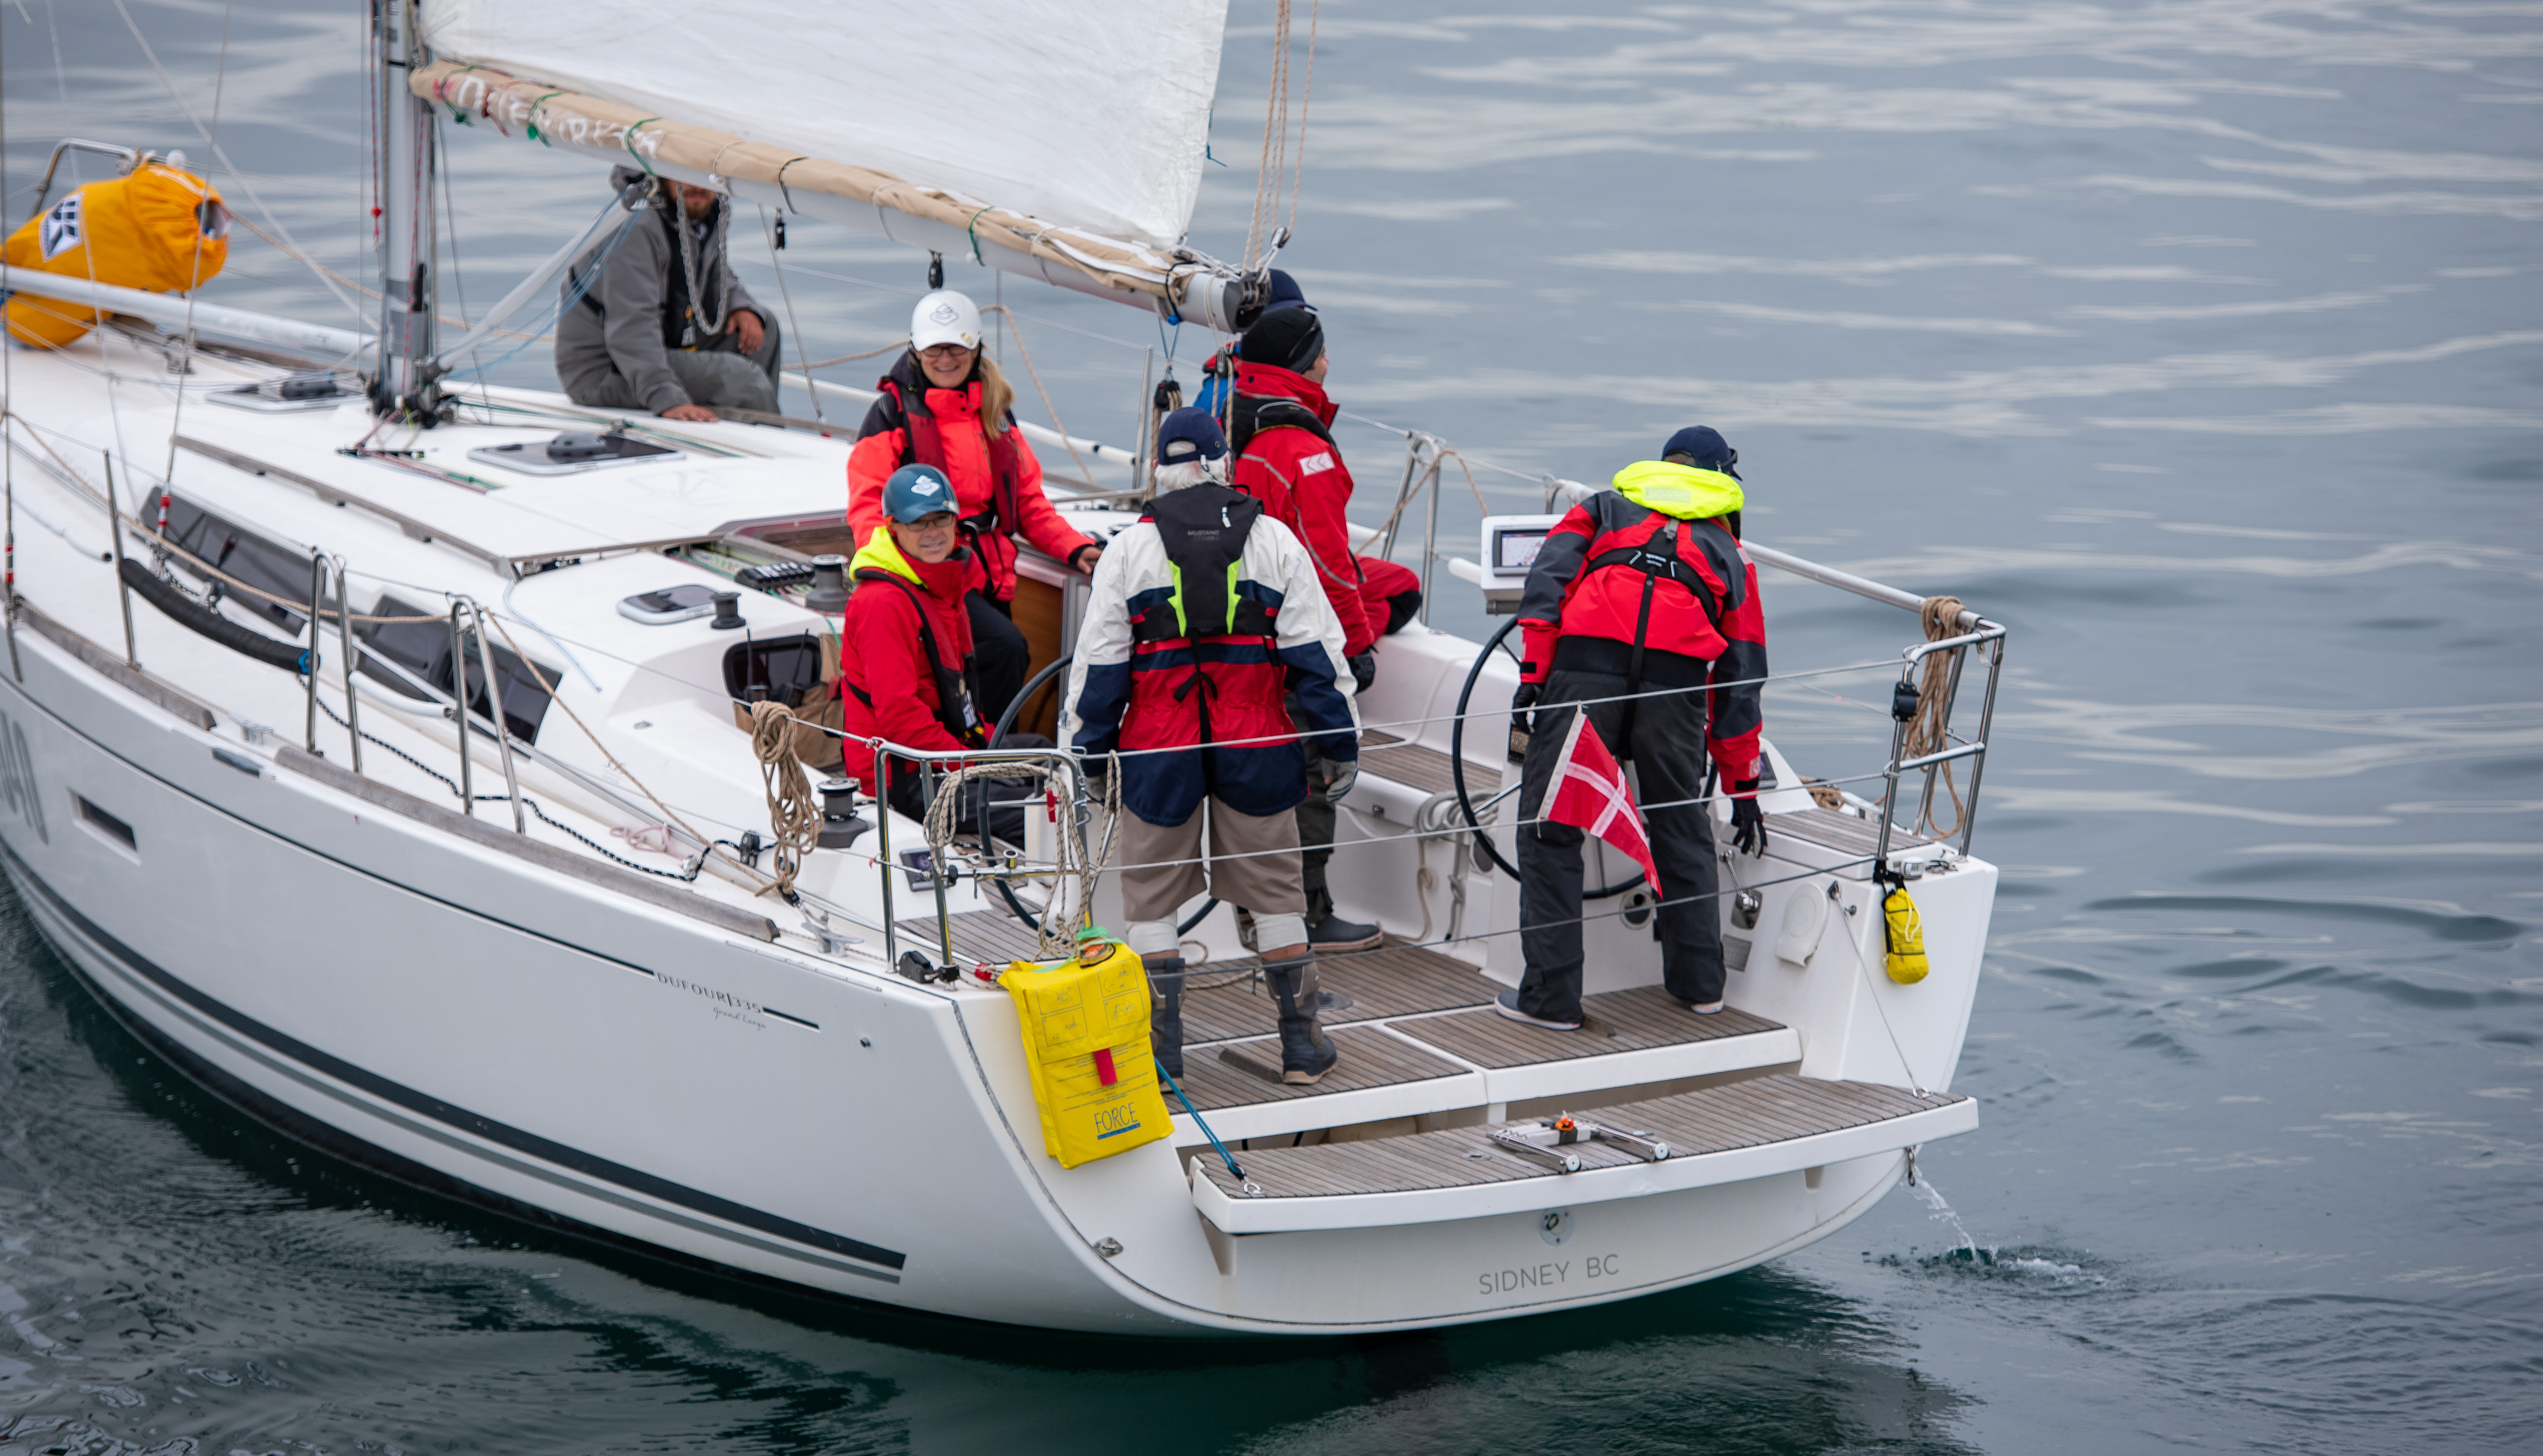 Swiftsure-25-May-2019-RMS-Media-by-Rob-Porter-11